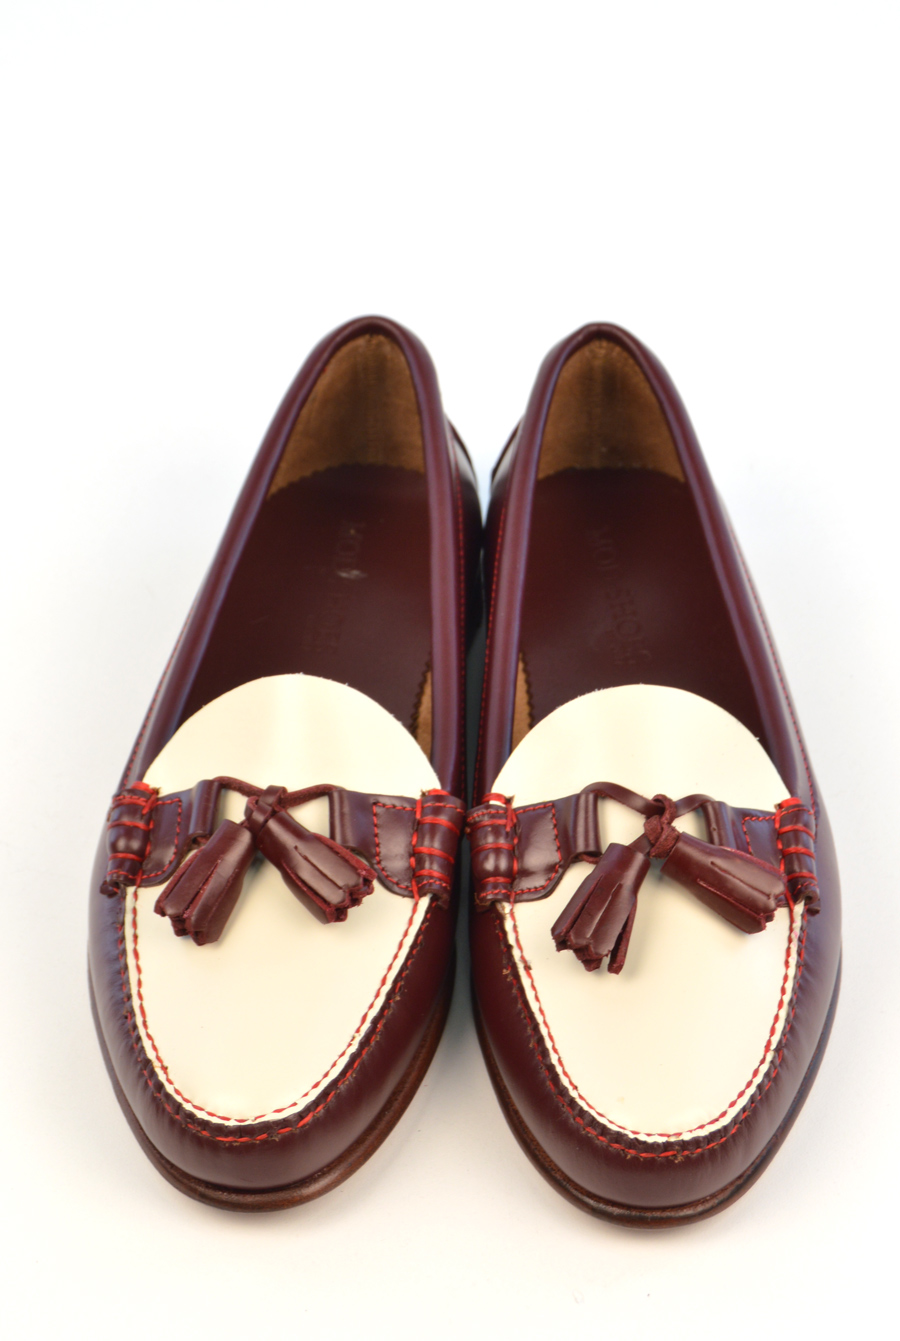 modshoes-red-and-cream-ladies-tassel-loafers-the-labelles-01